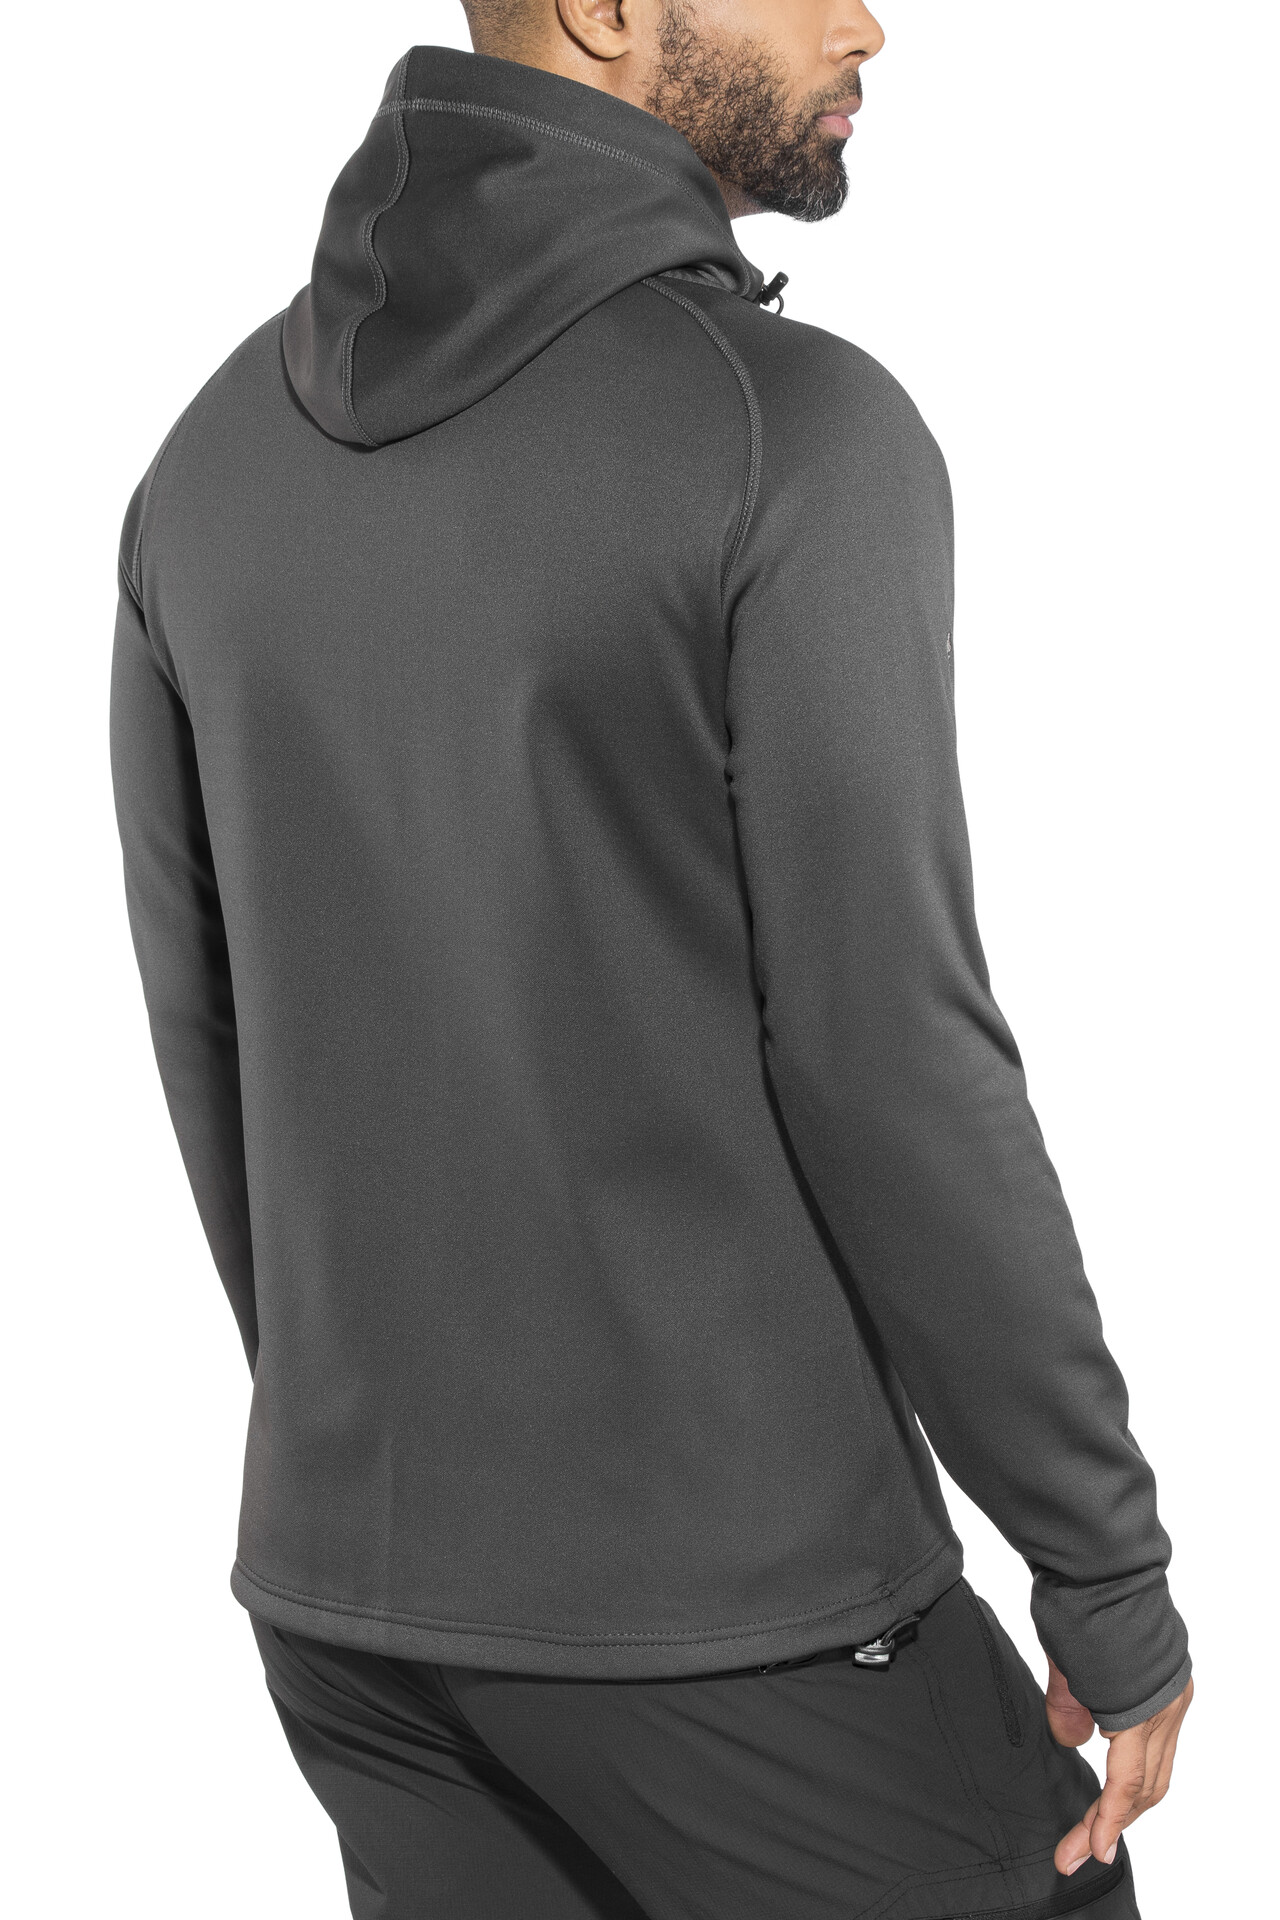 Pinewood Himalaya Activ Sweater Herren dark anthrazit